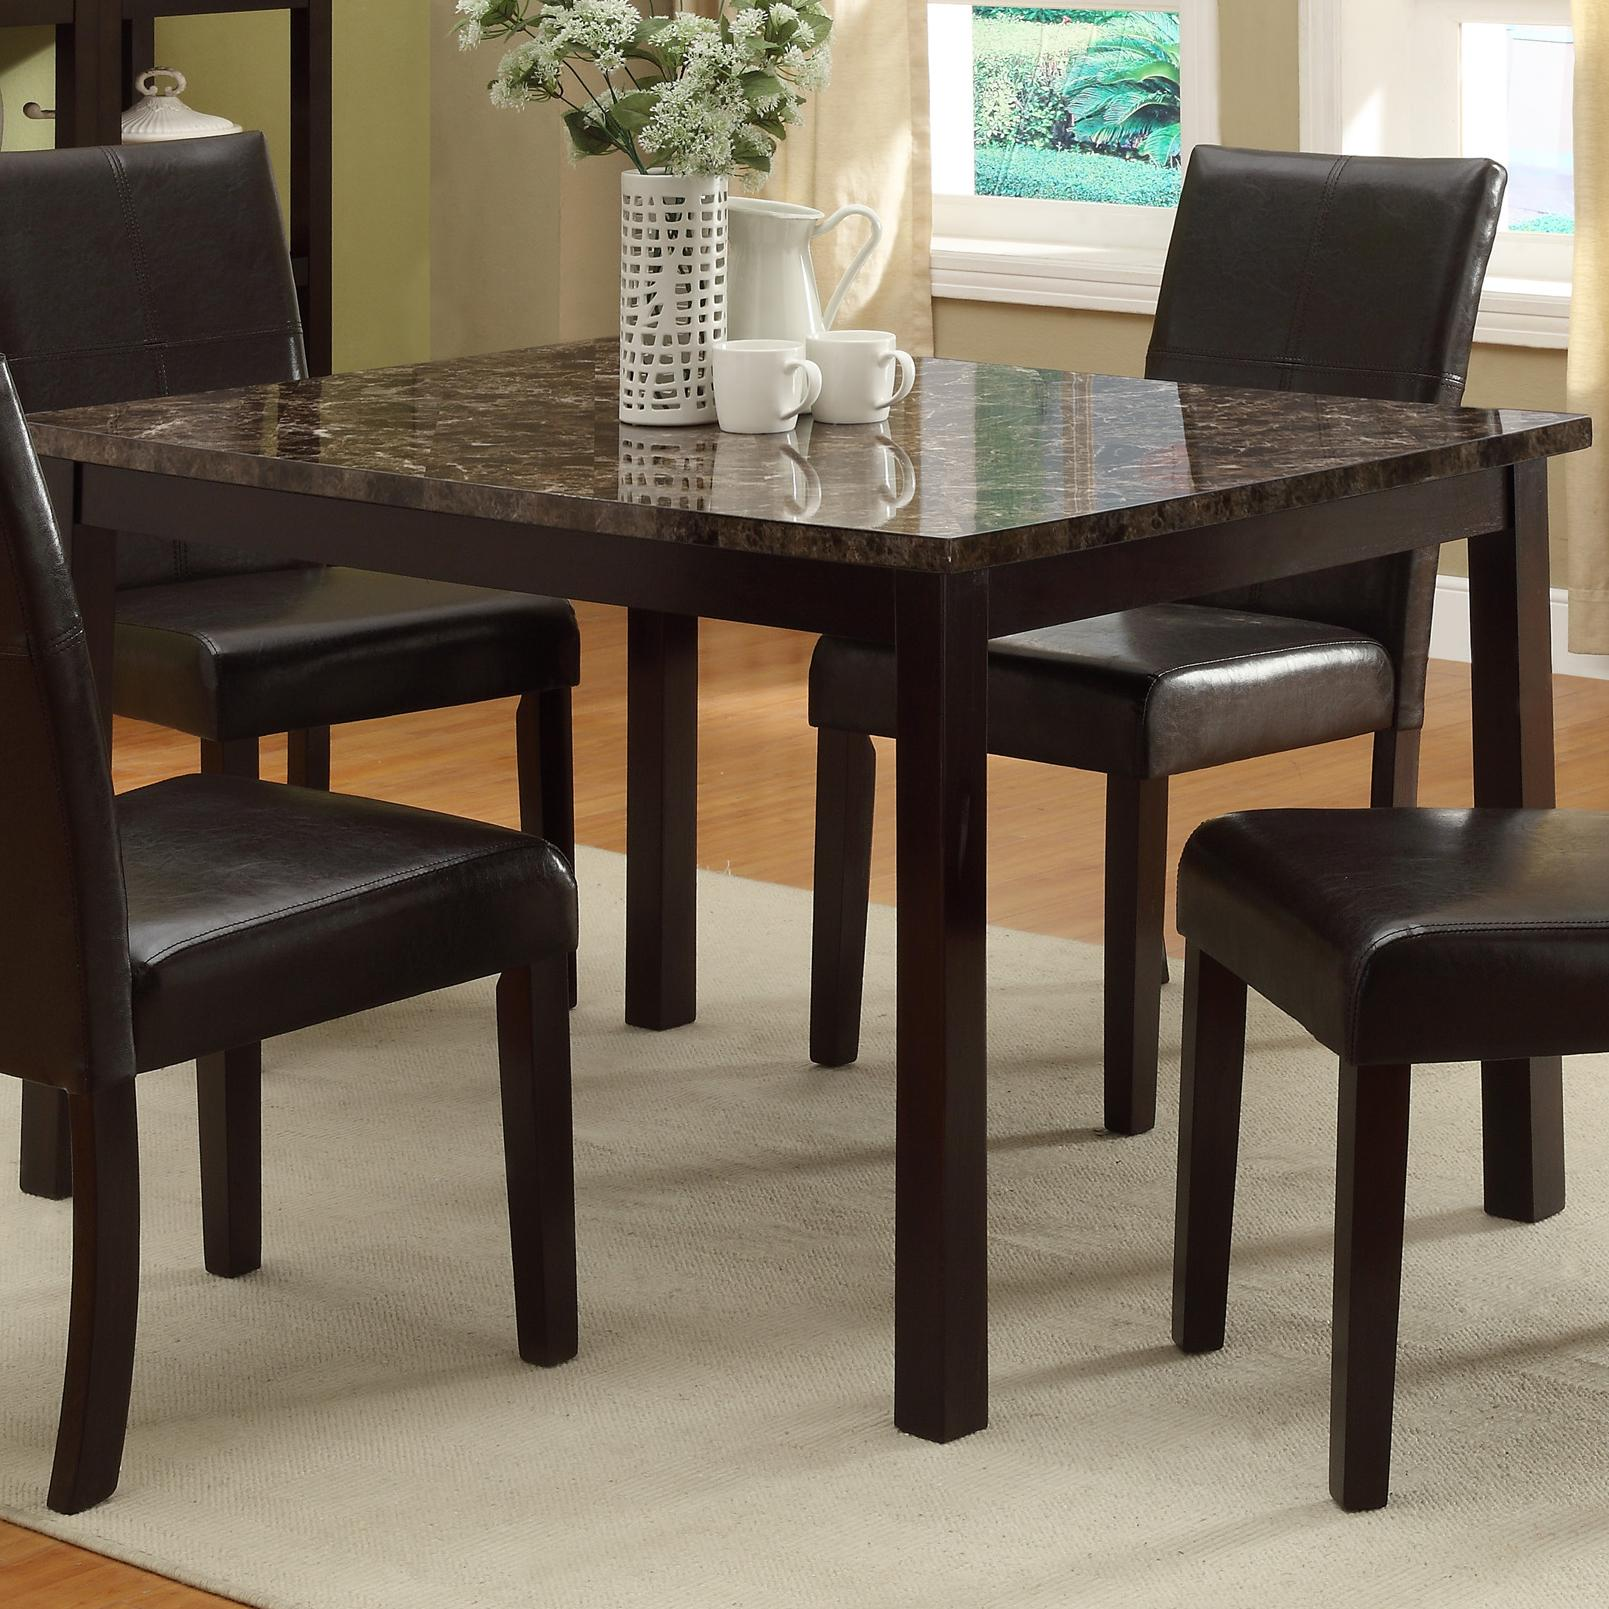 Kitchen Table Top : Crown mark pompei t rectangular dining table with